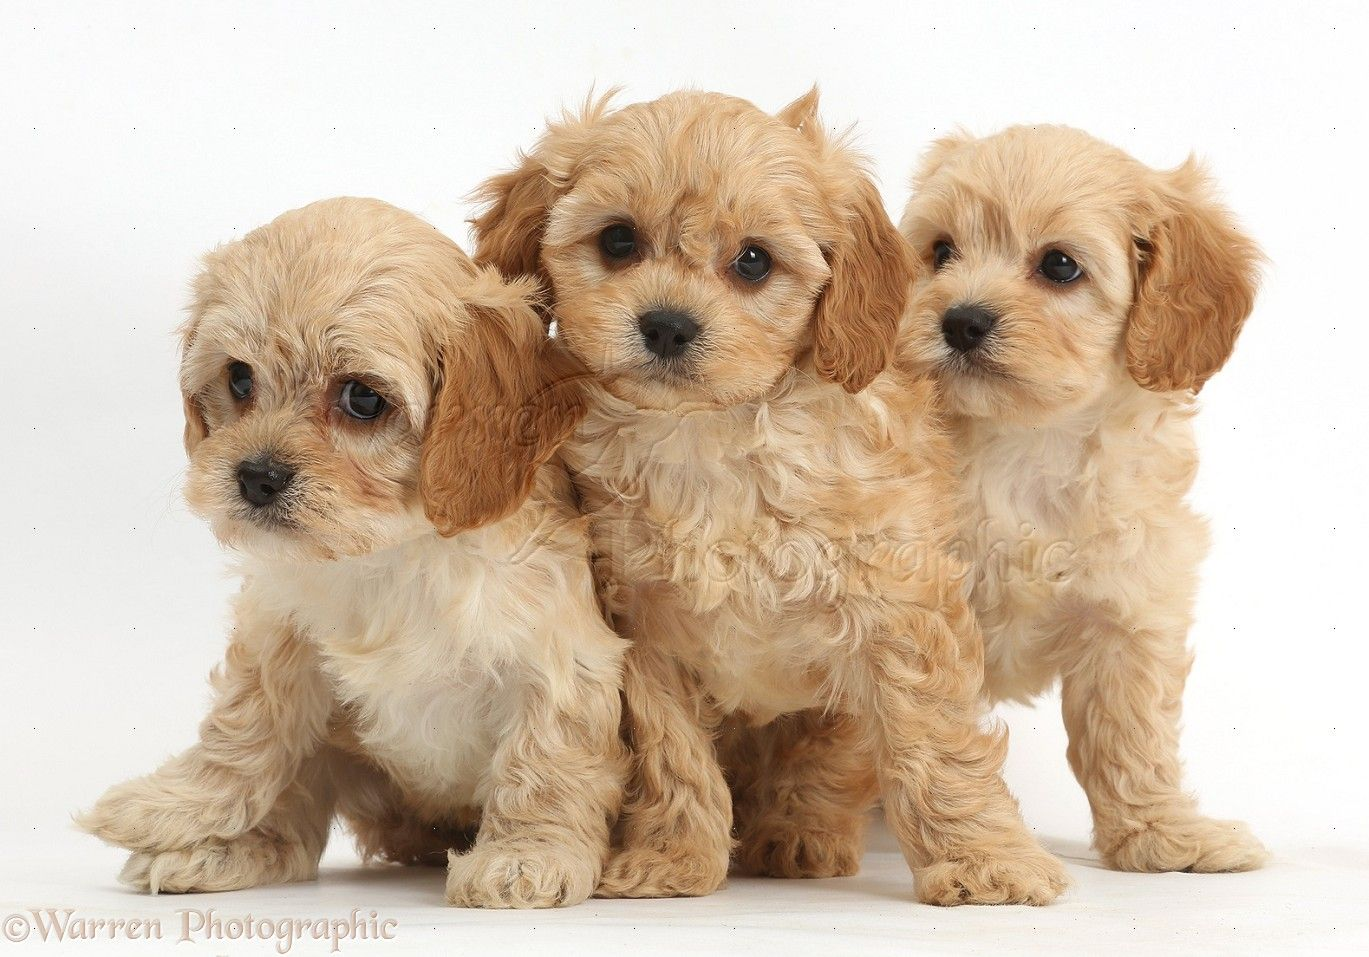 Great Cavapoo Brown Adorable Dog - 6d3d887f7aff1f585e5290b3b9c163fb  Collection_427927  .jpg